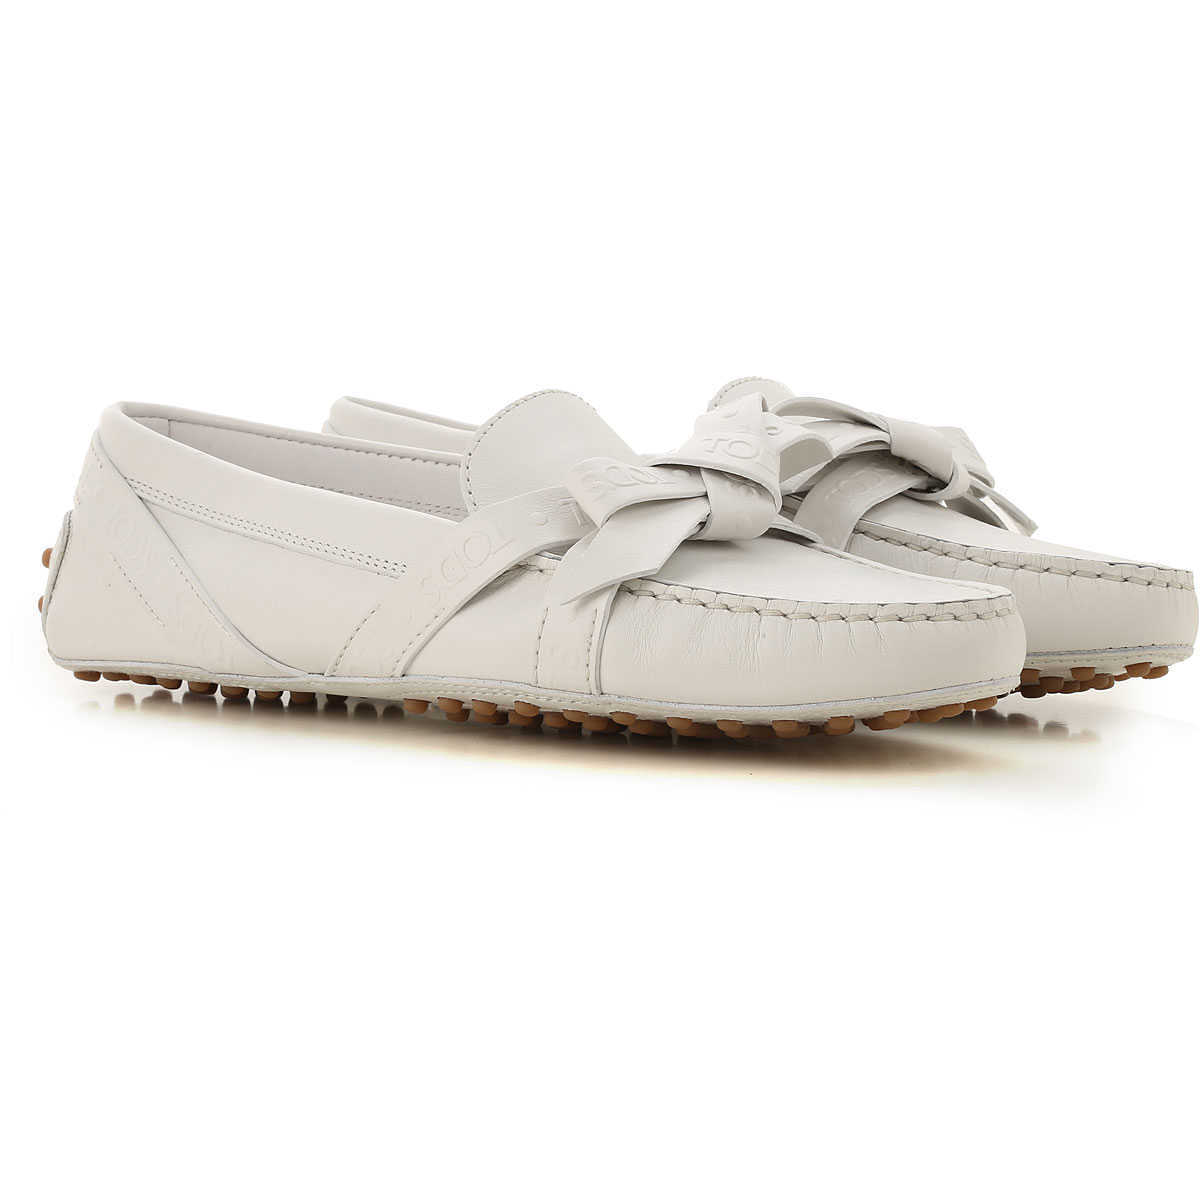 Tods Loafers for Women On Sale Icy White - GOOFASH